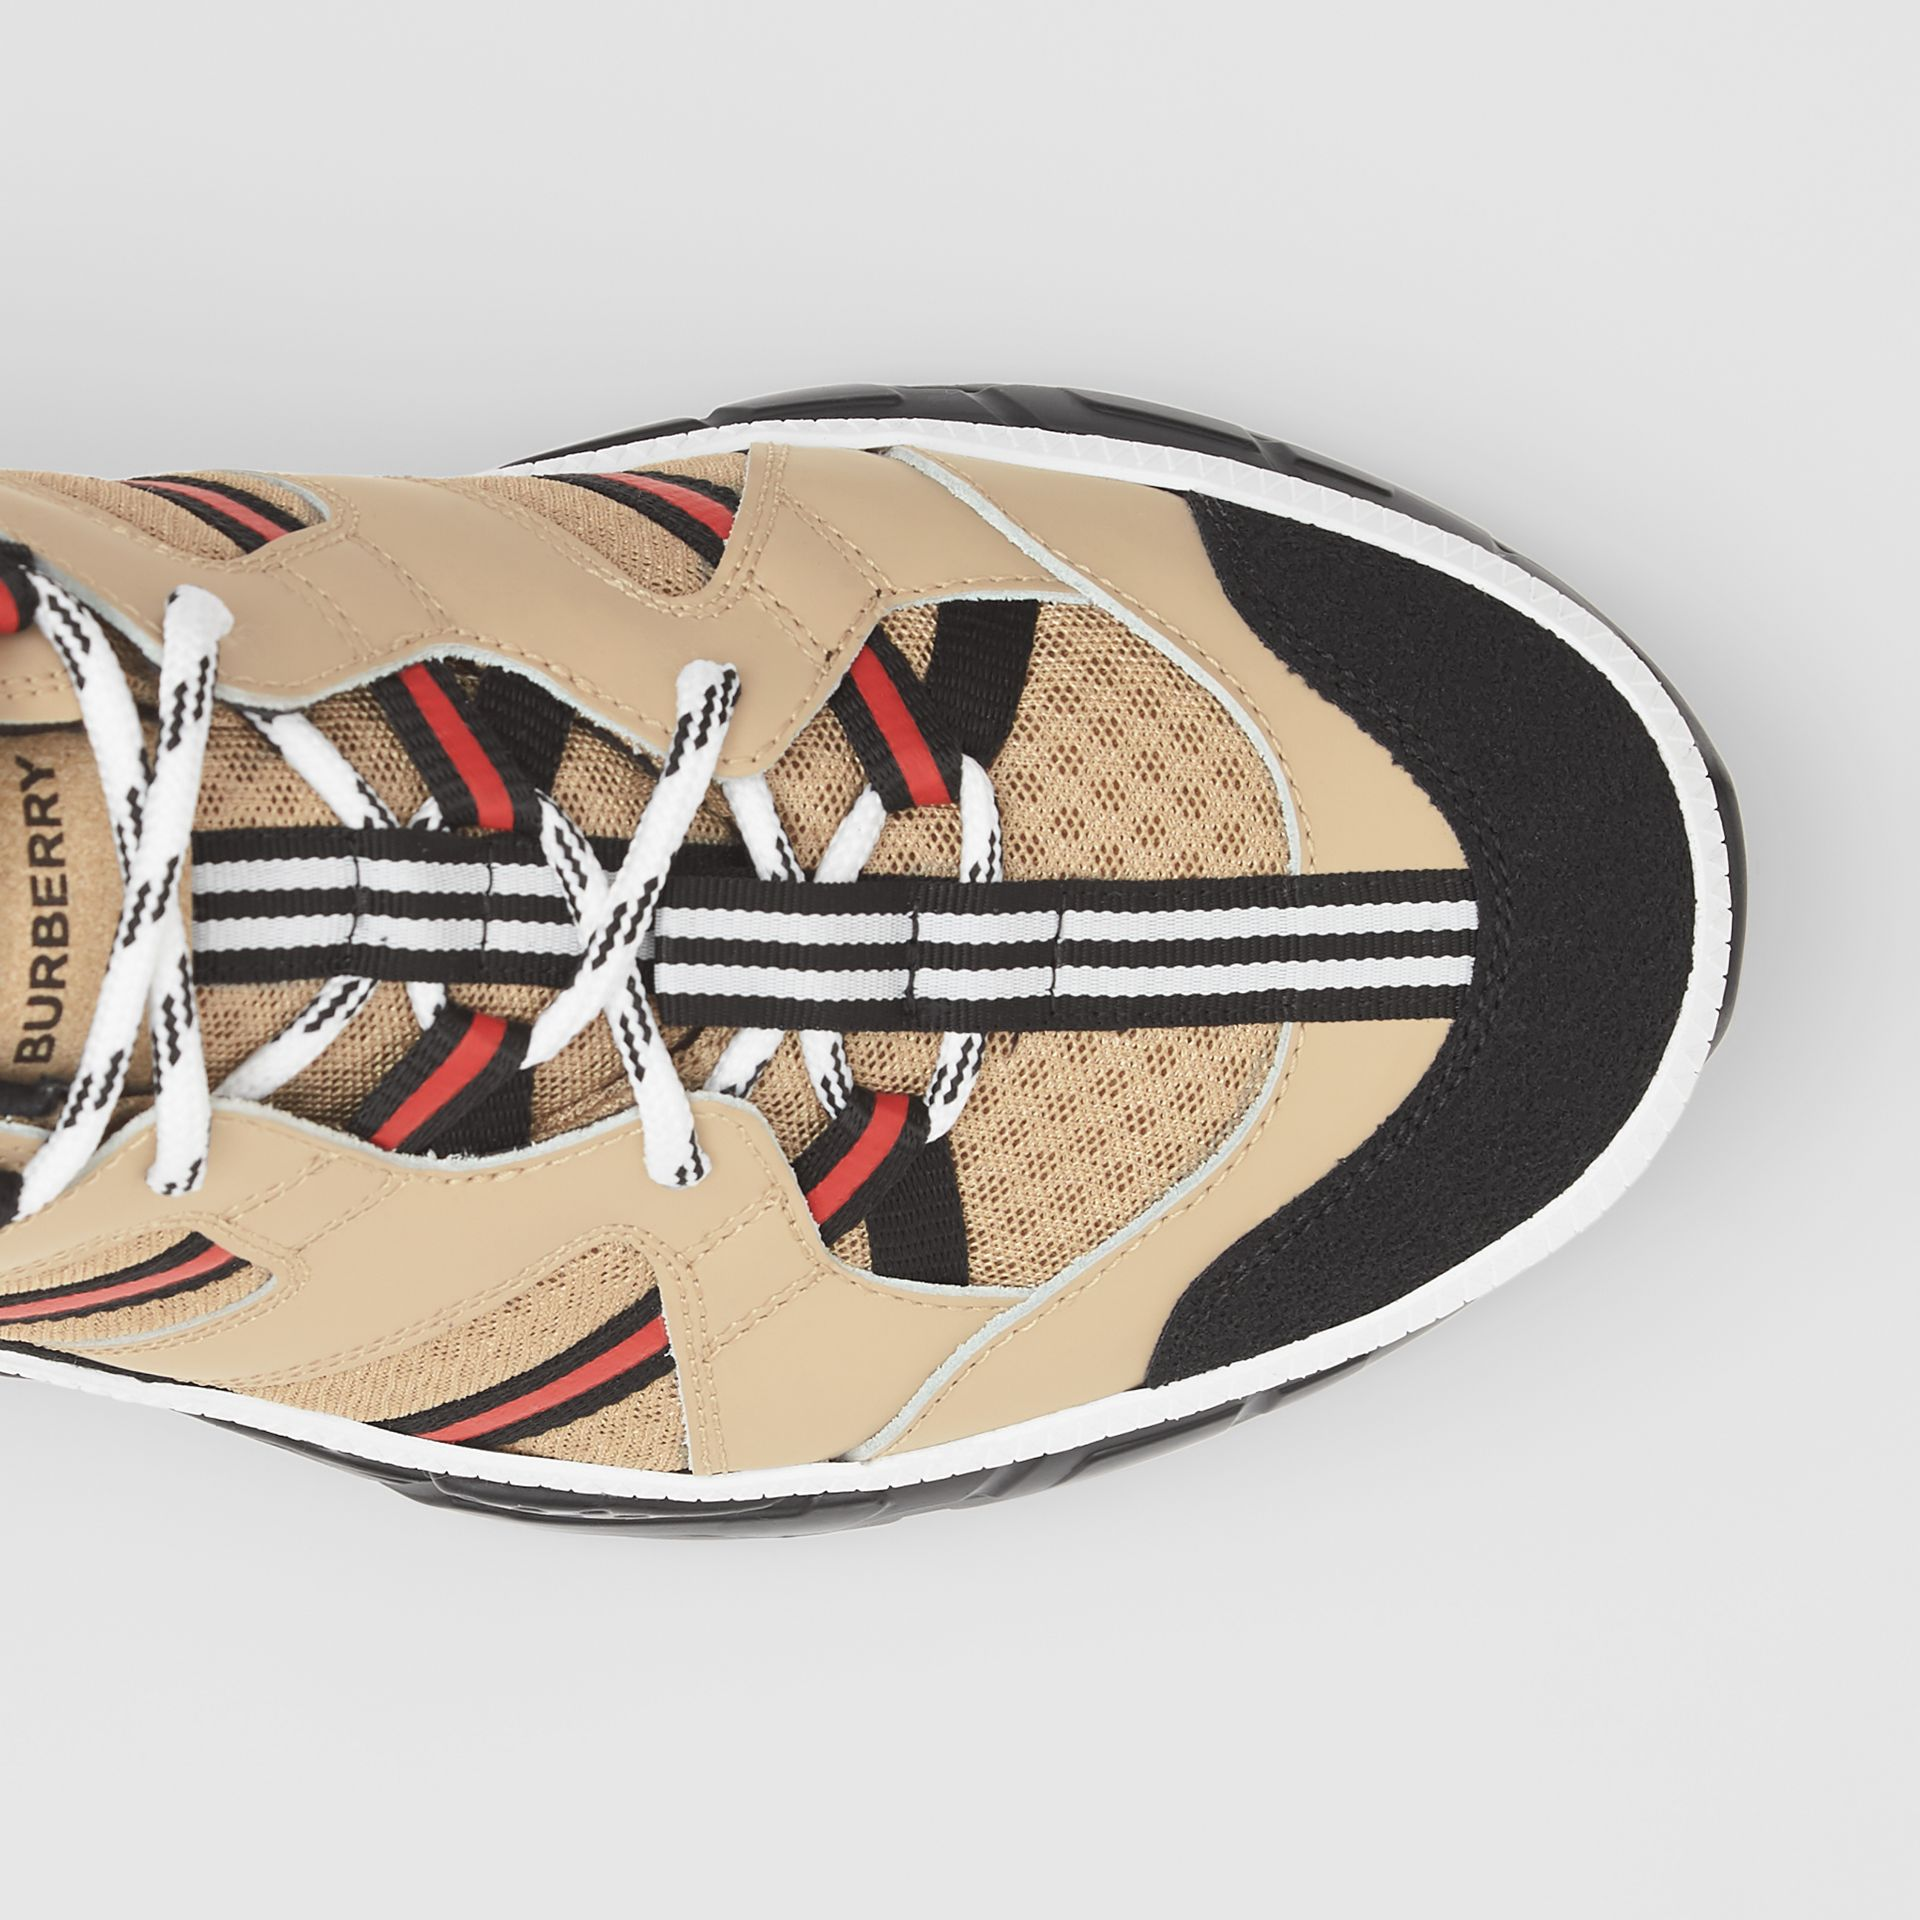 Mesh and Leather Union Sneakers in Beige - Men | Burberry United States - gallery image 6